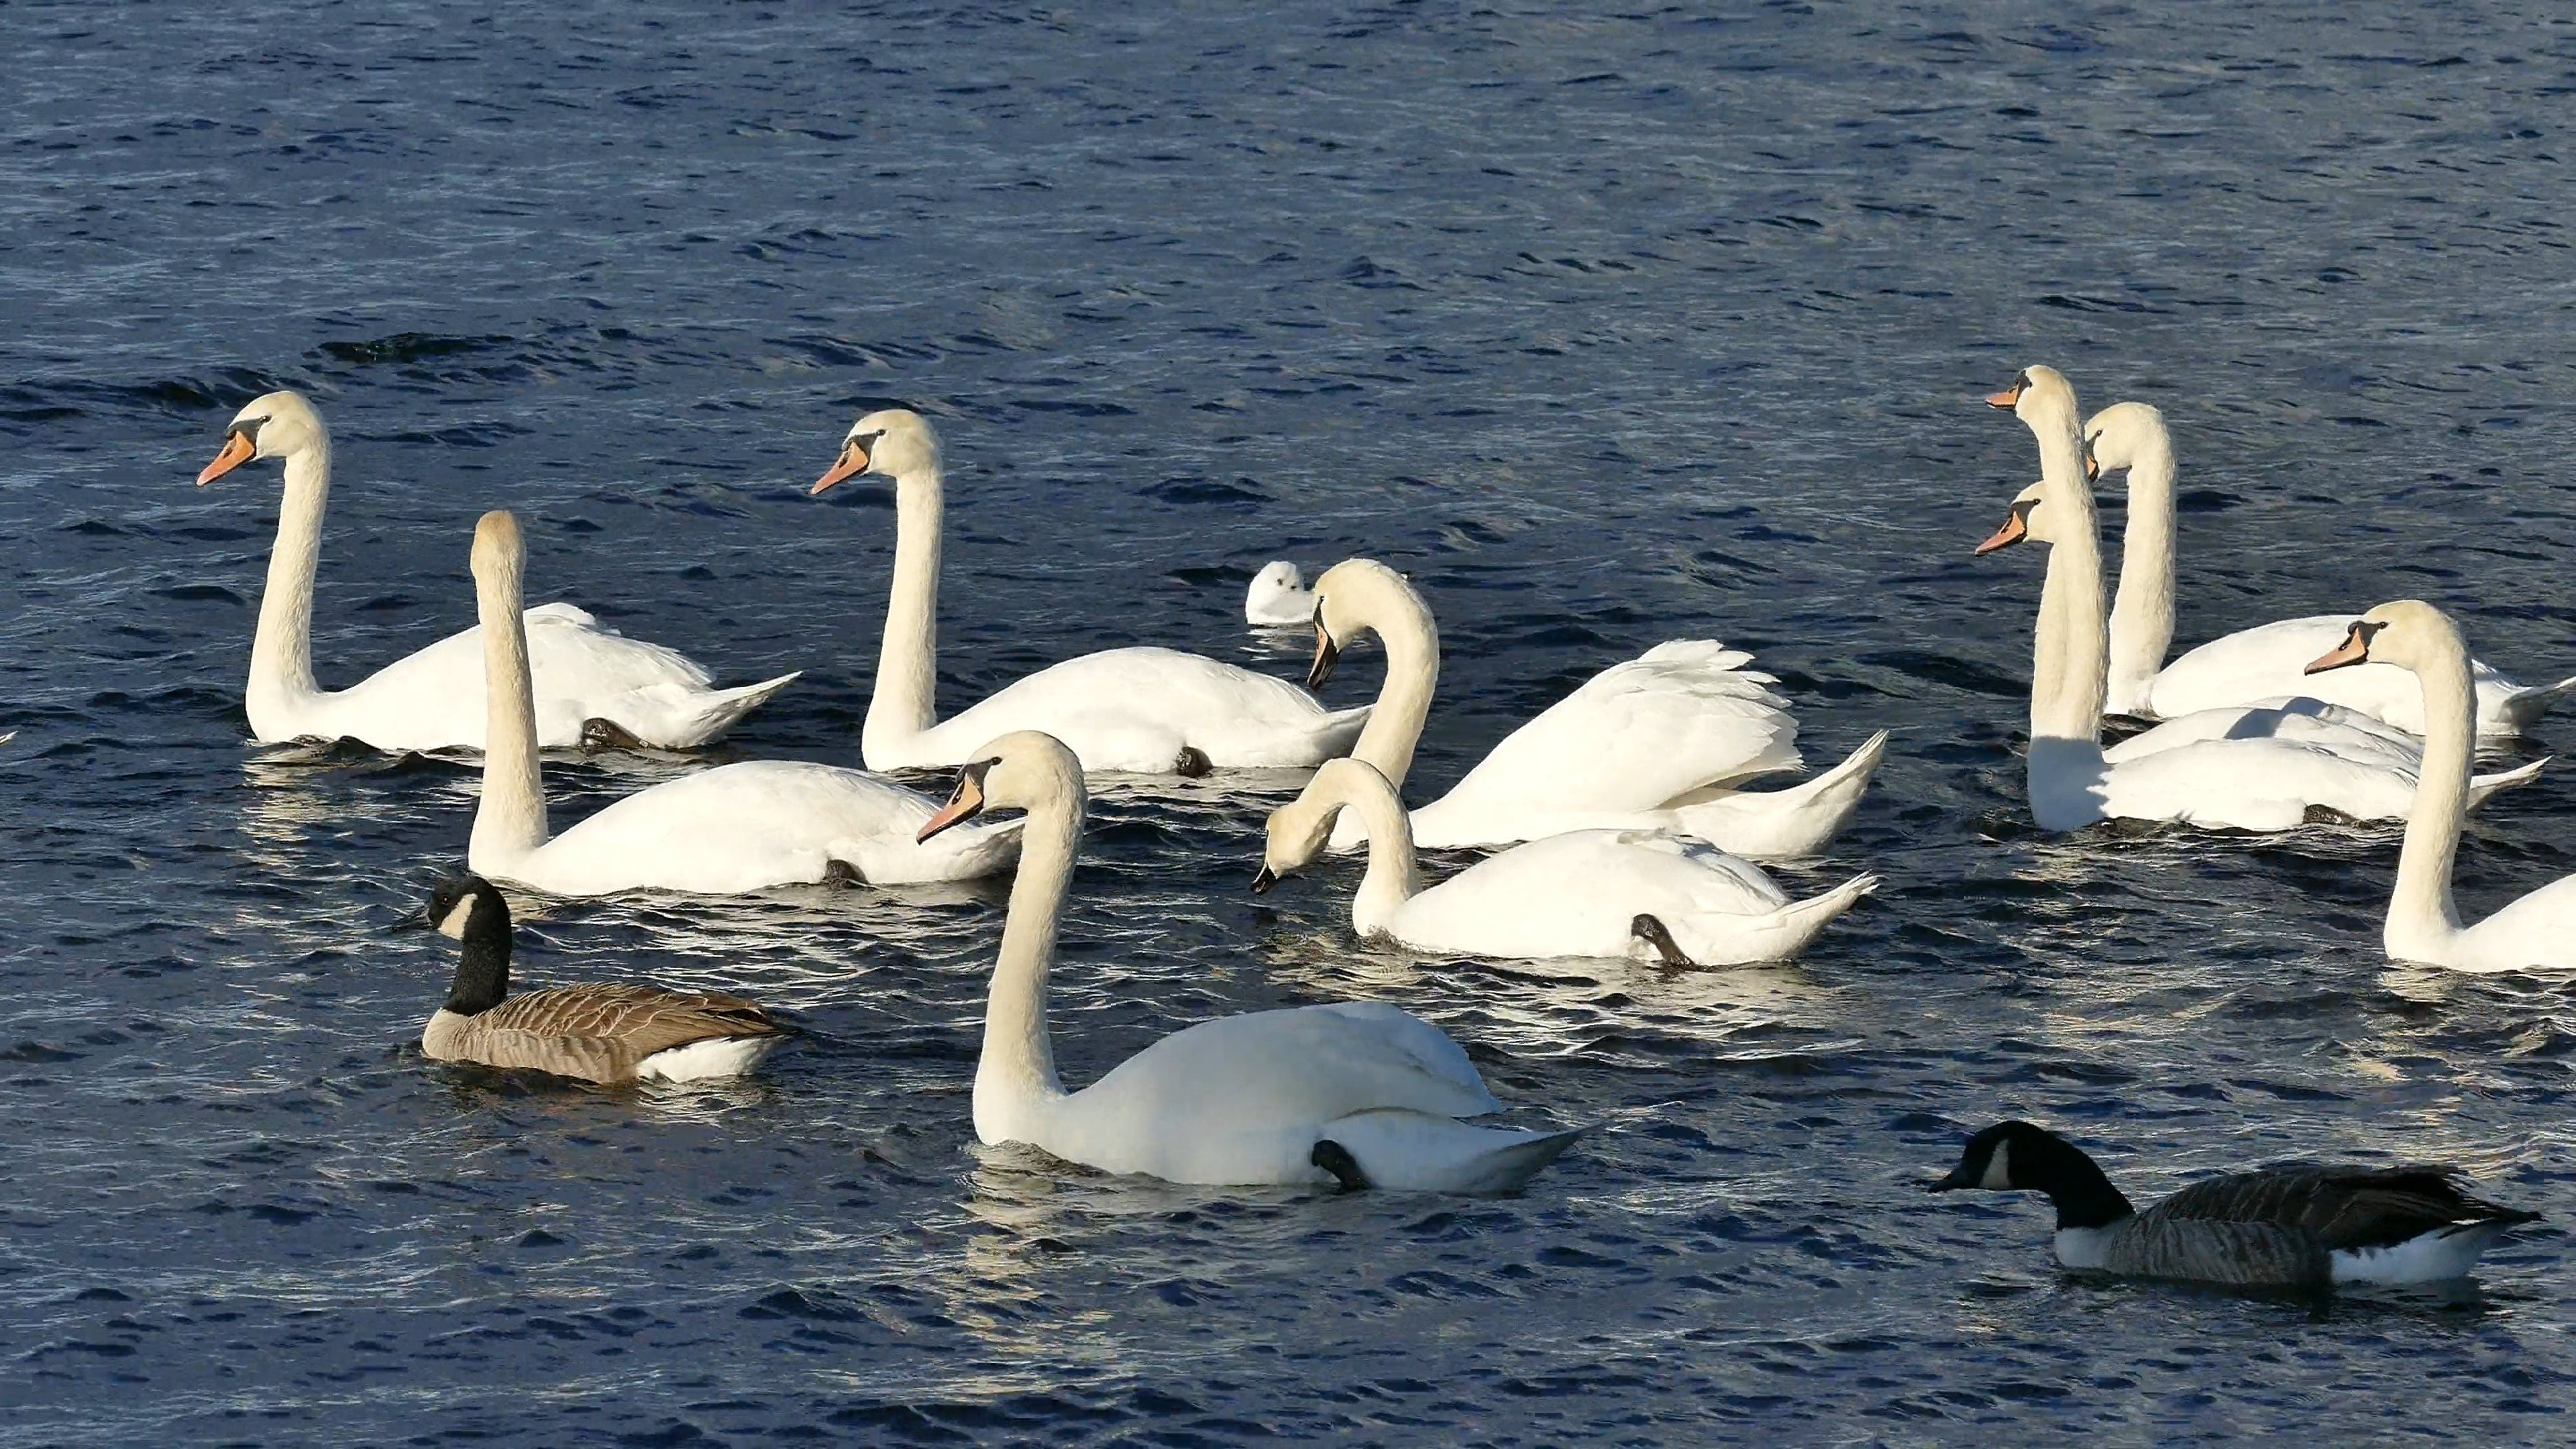 Single Duck Among Swans